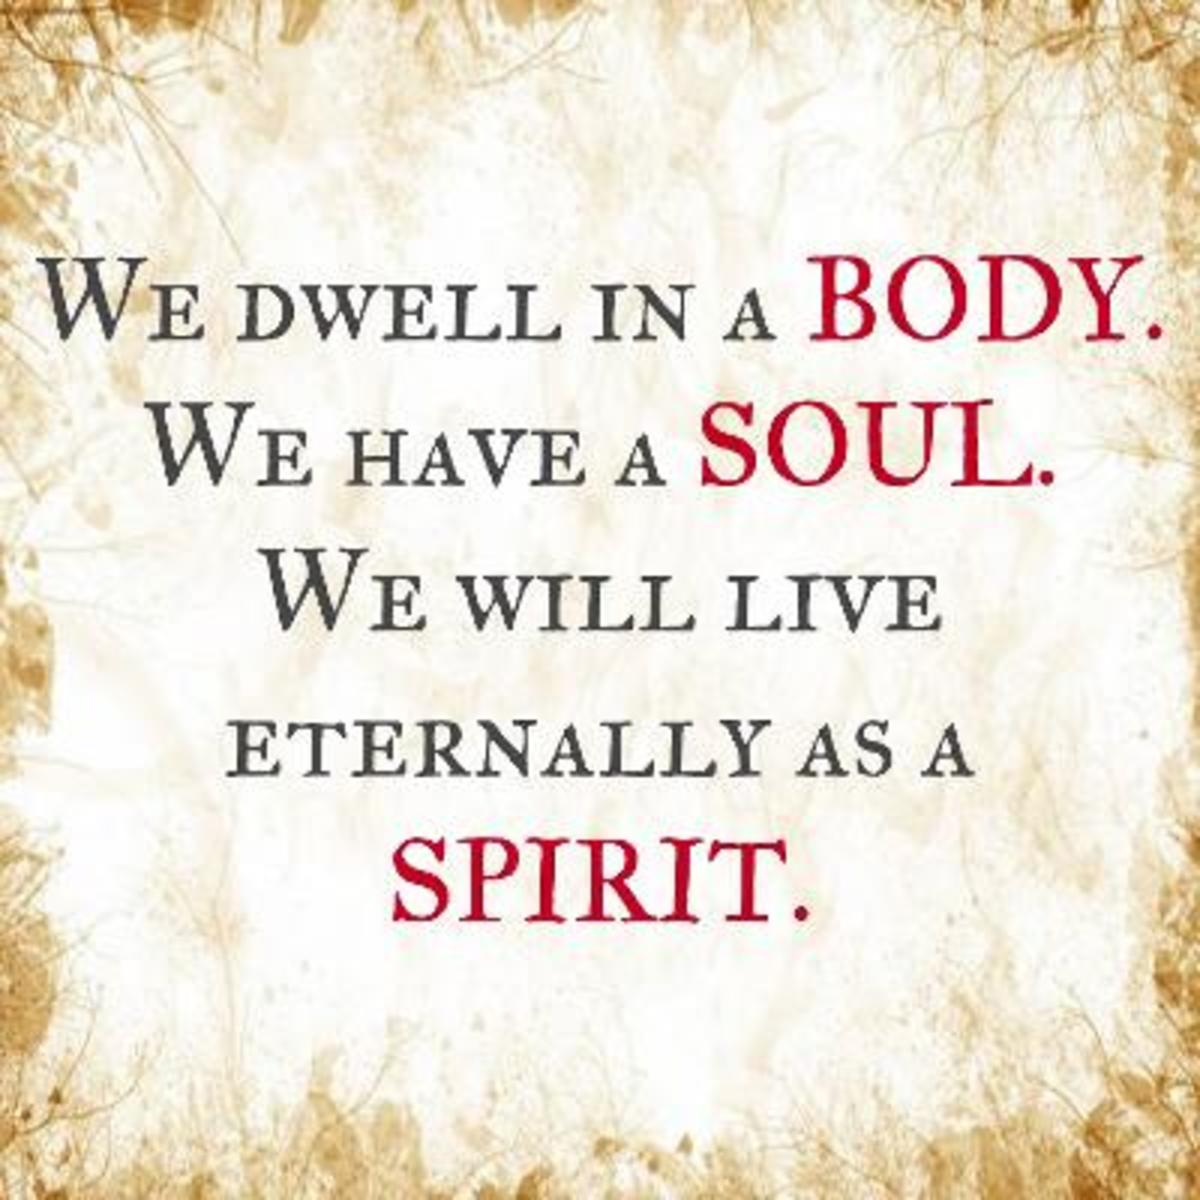 three-parts-of-humans-explained-body-soul-and-spirit